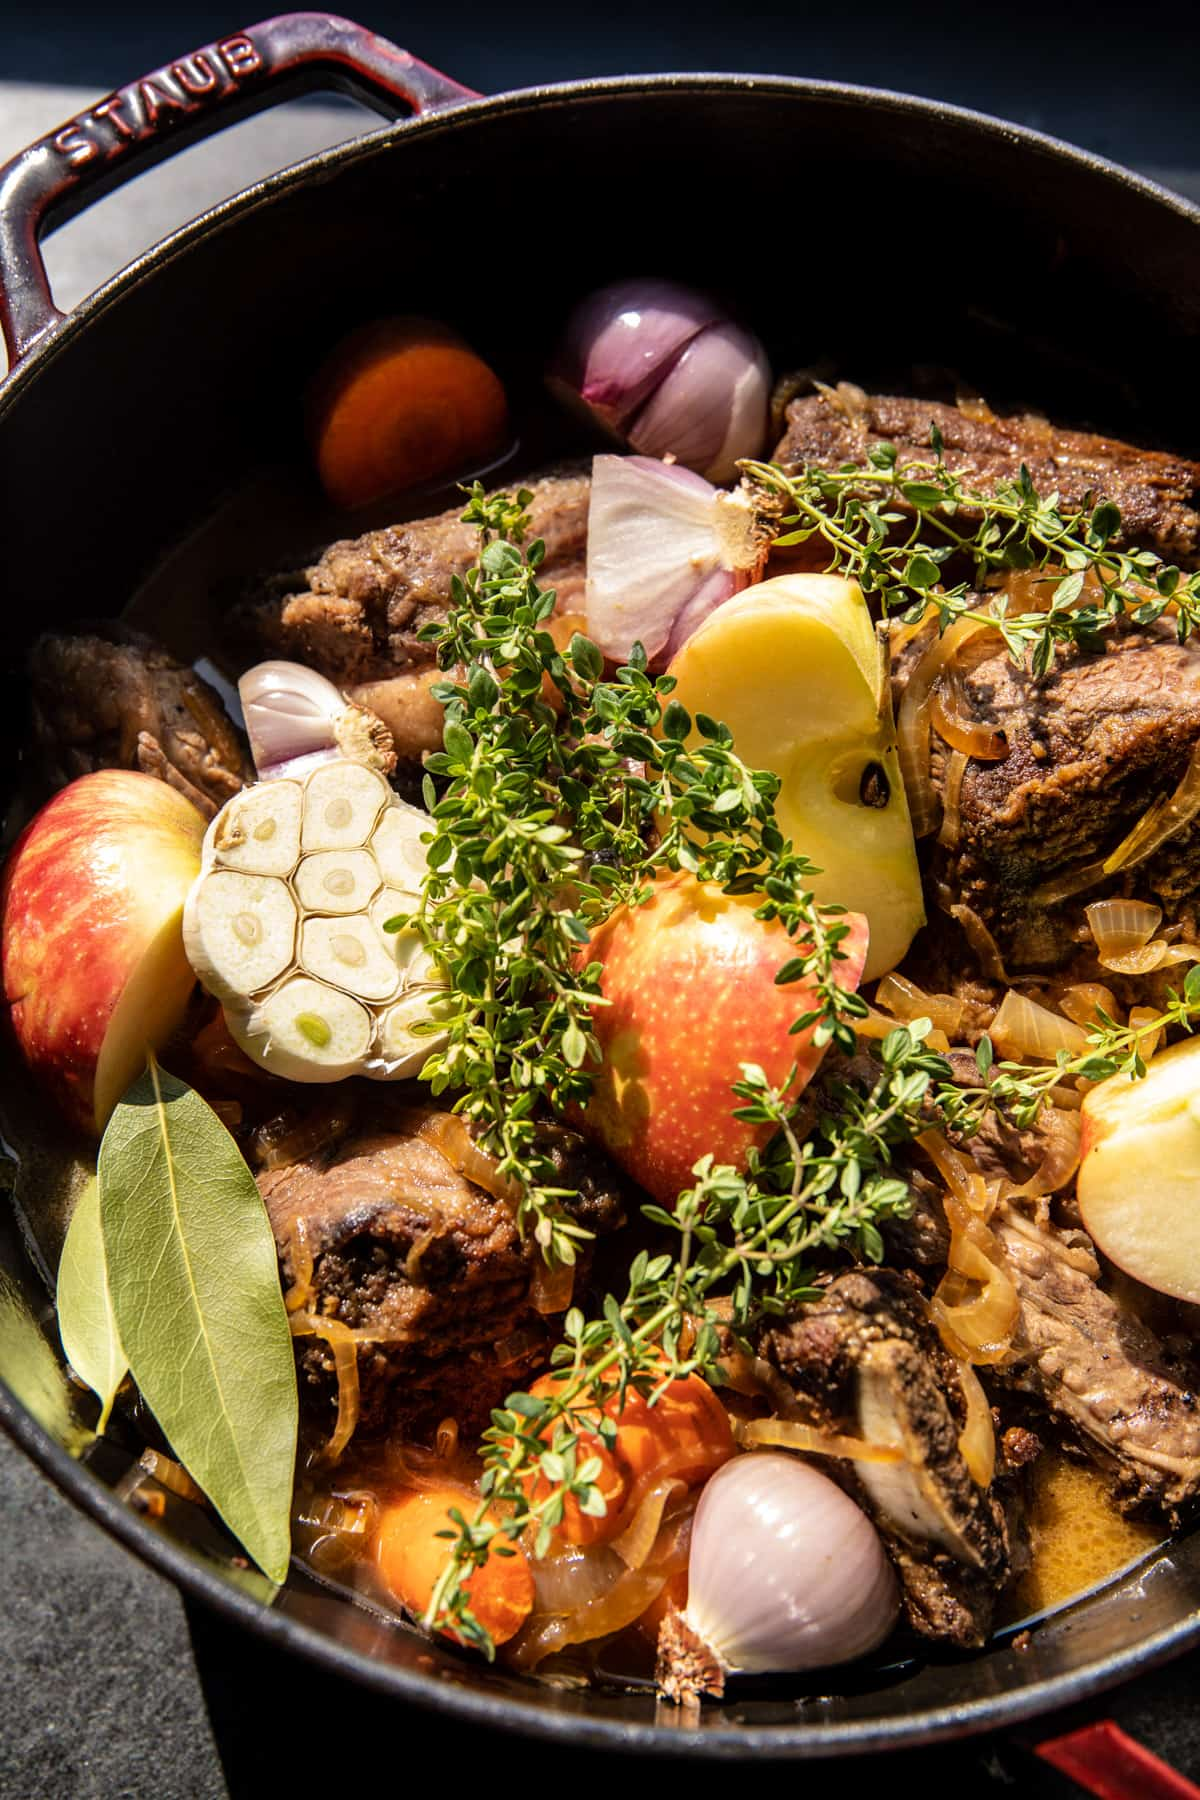 Cider Braised Short Ribs with Caramelized Onions | halffbakedharvest.com